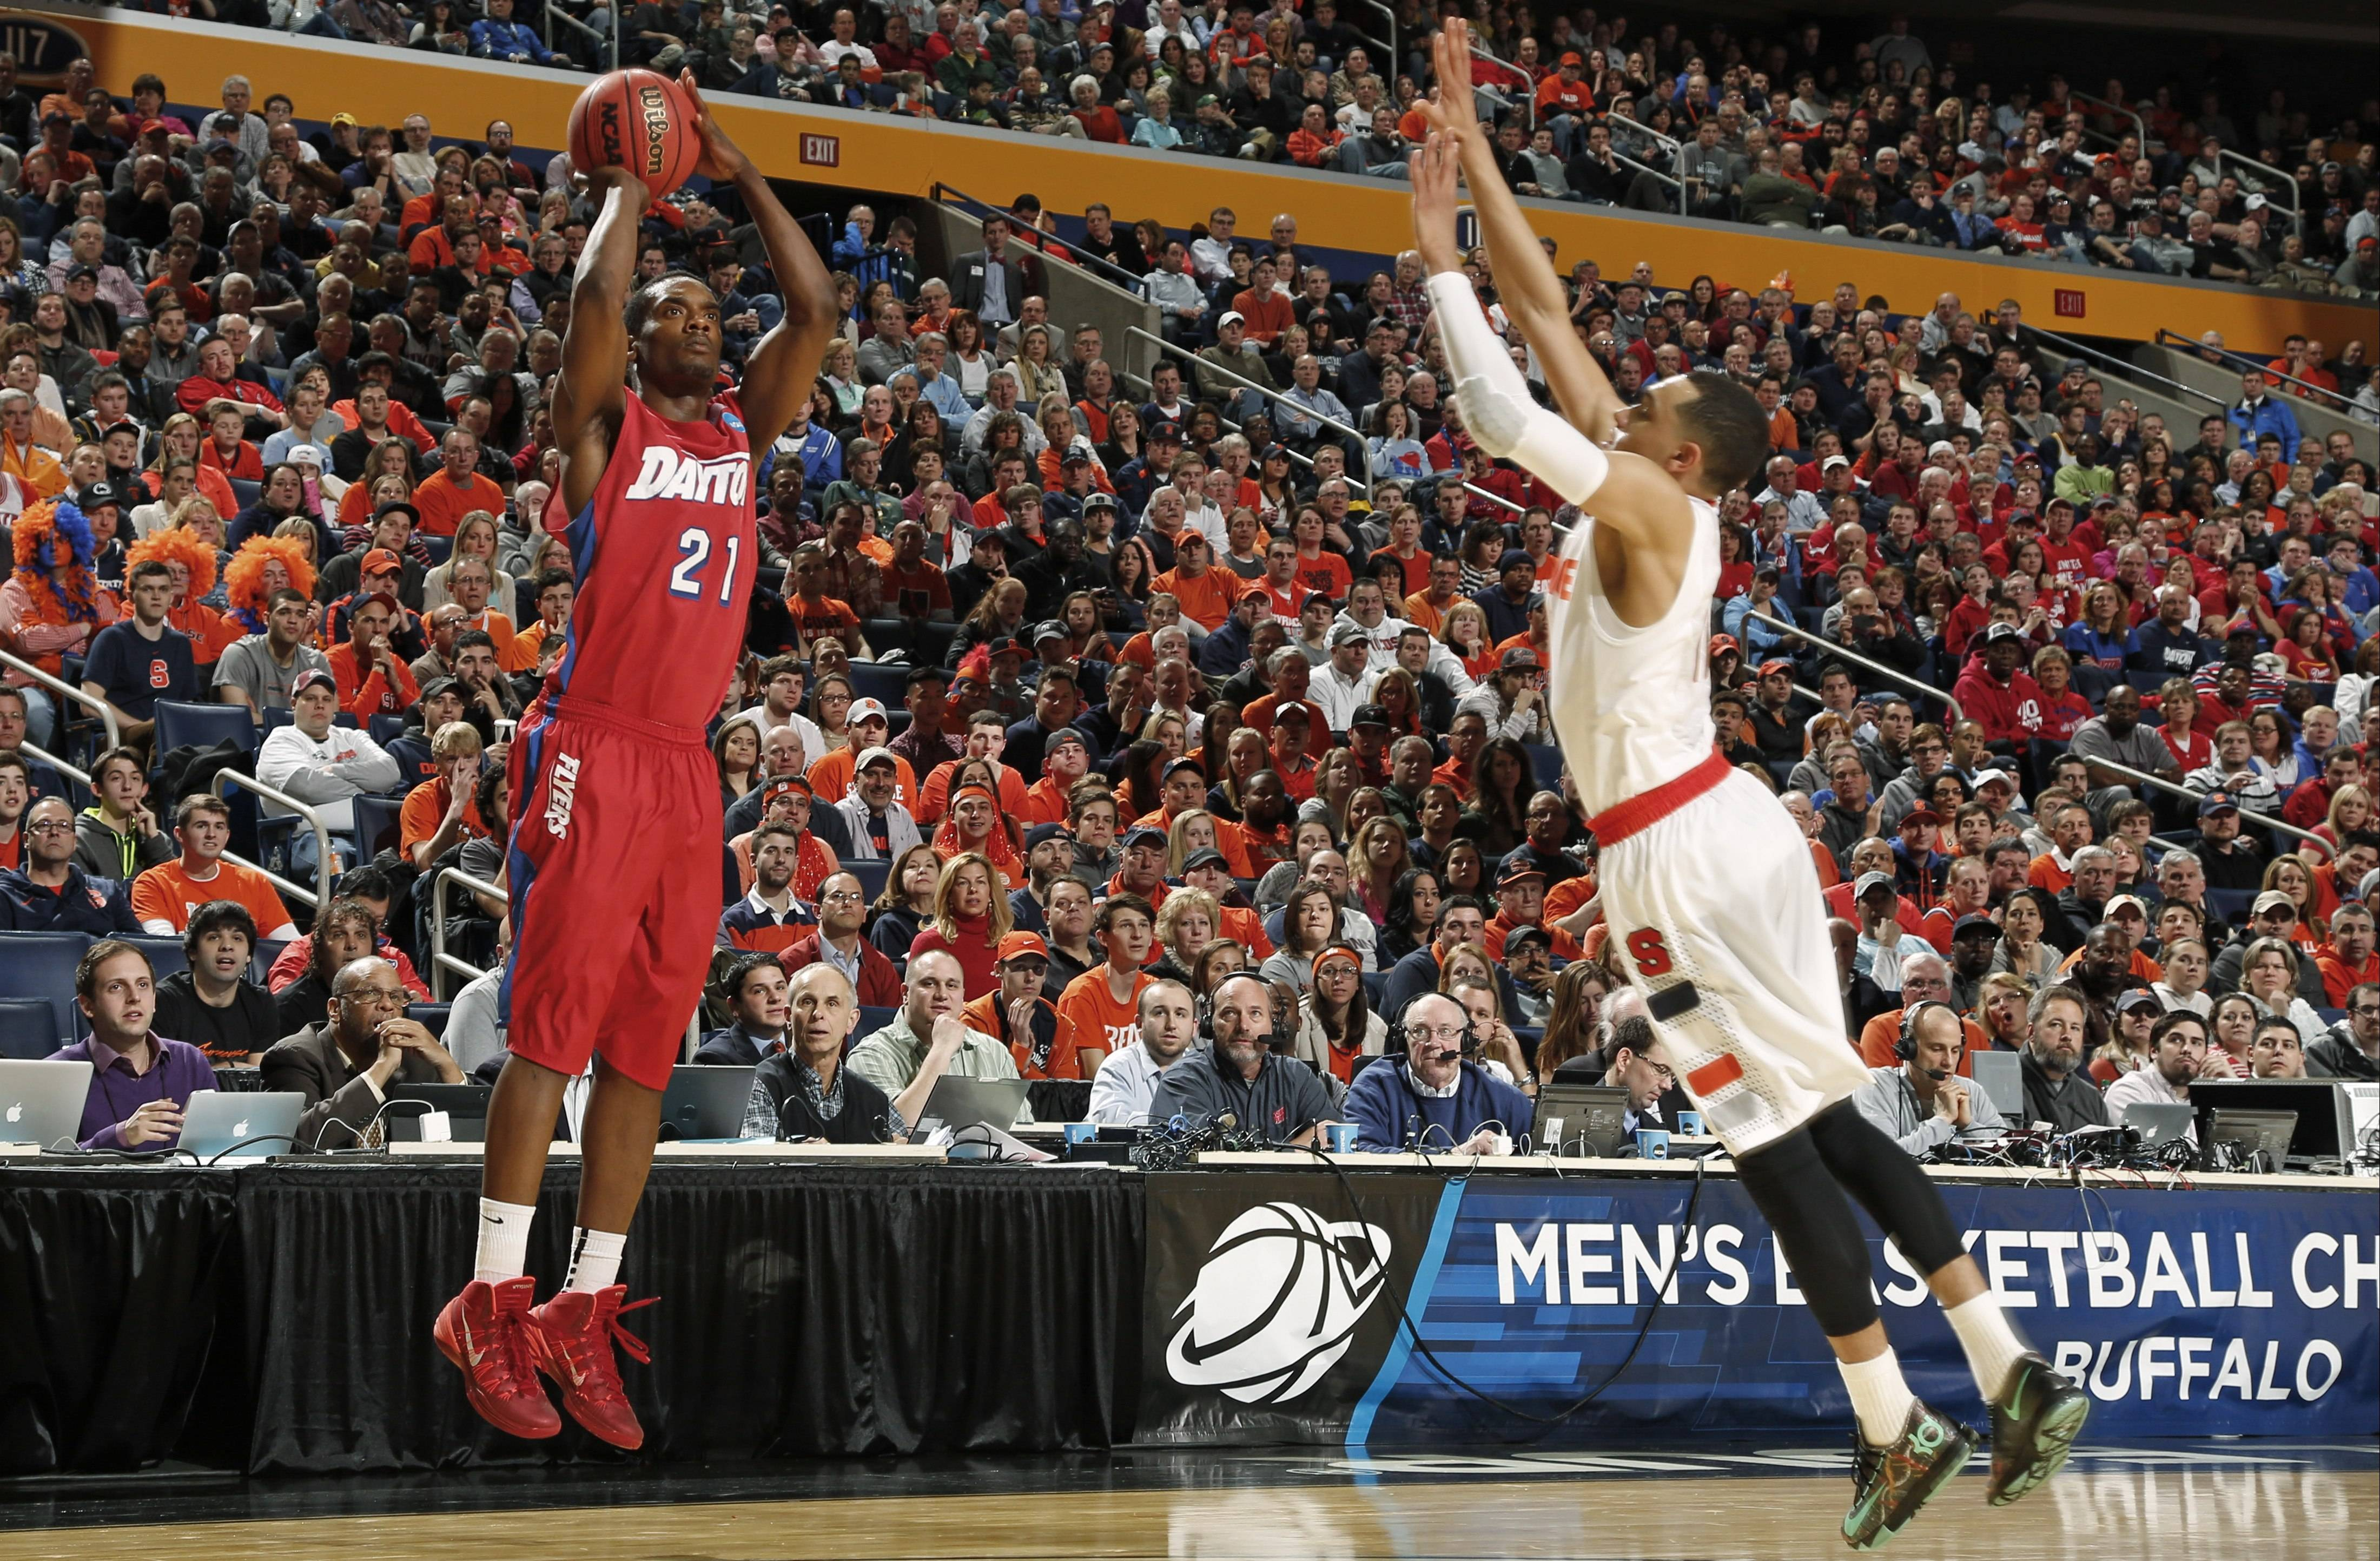 Dayton's Dyshawn Pierre (21) shoots over Syracuse's Tyler Ennis (11) during a third-round game in the NCAA men's college basketball tournament Saturday in Buffalo, N.Y. Pierre scored 14 points in Dayton's upset win over Syracuse.